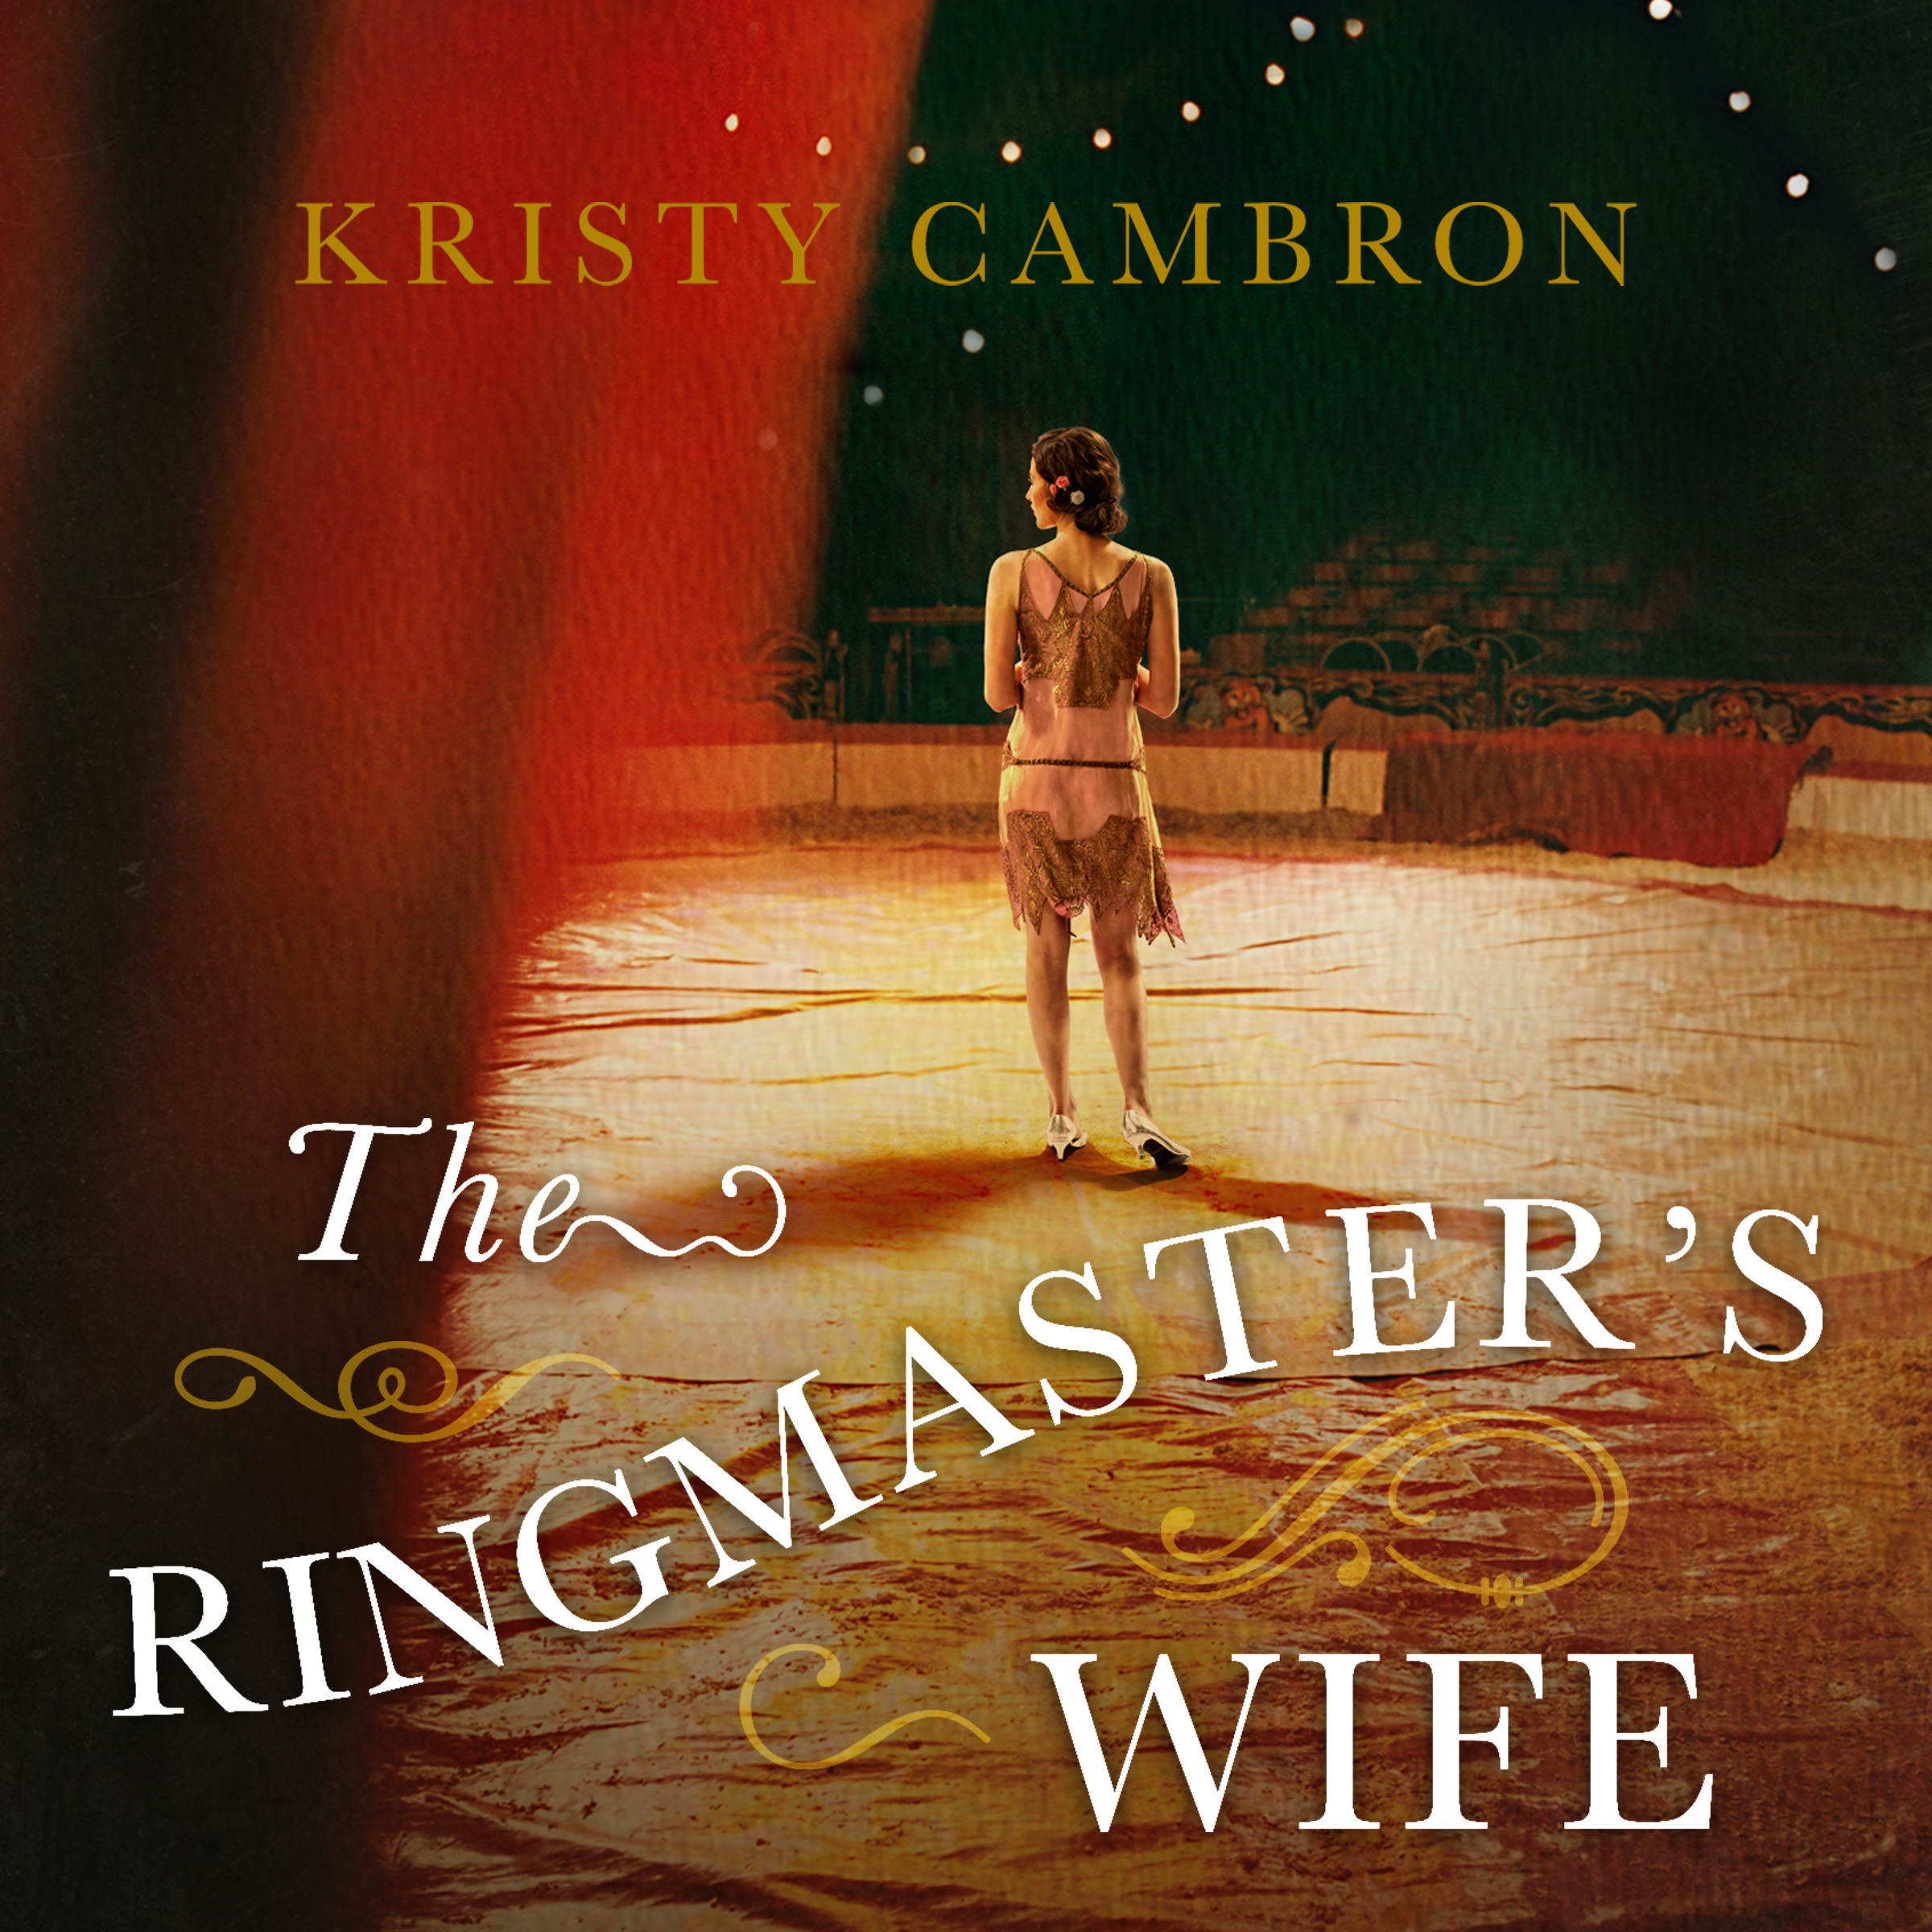 Printable The Ringmaster's Wife Audiobook Cover Art